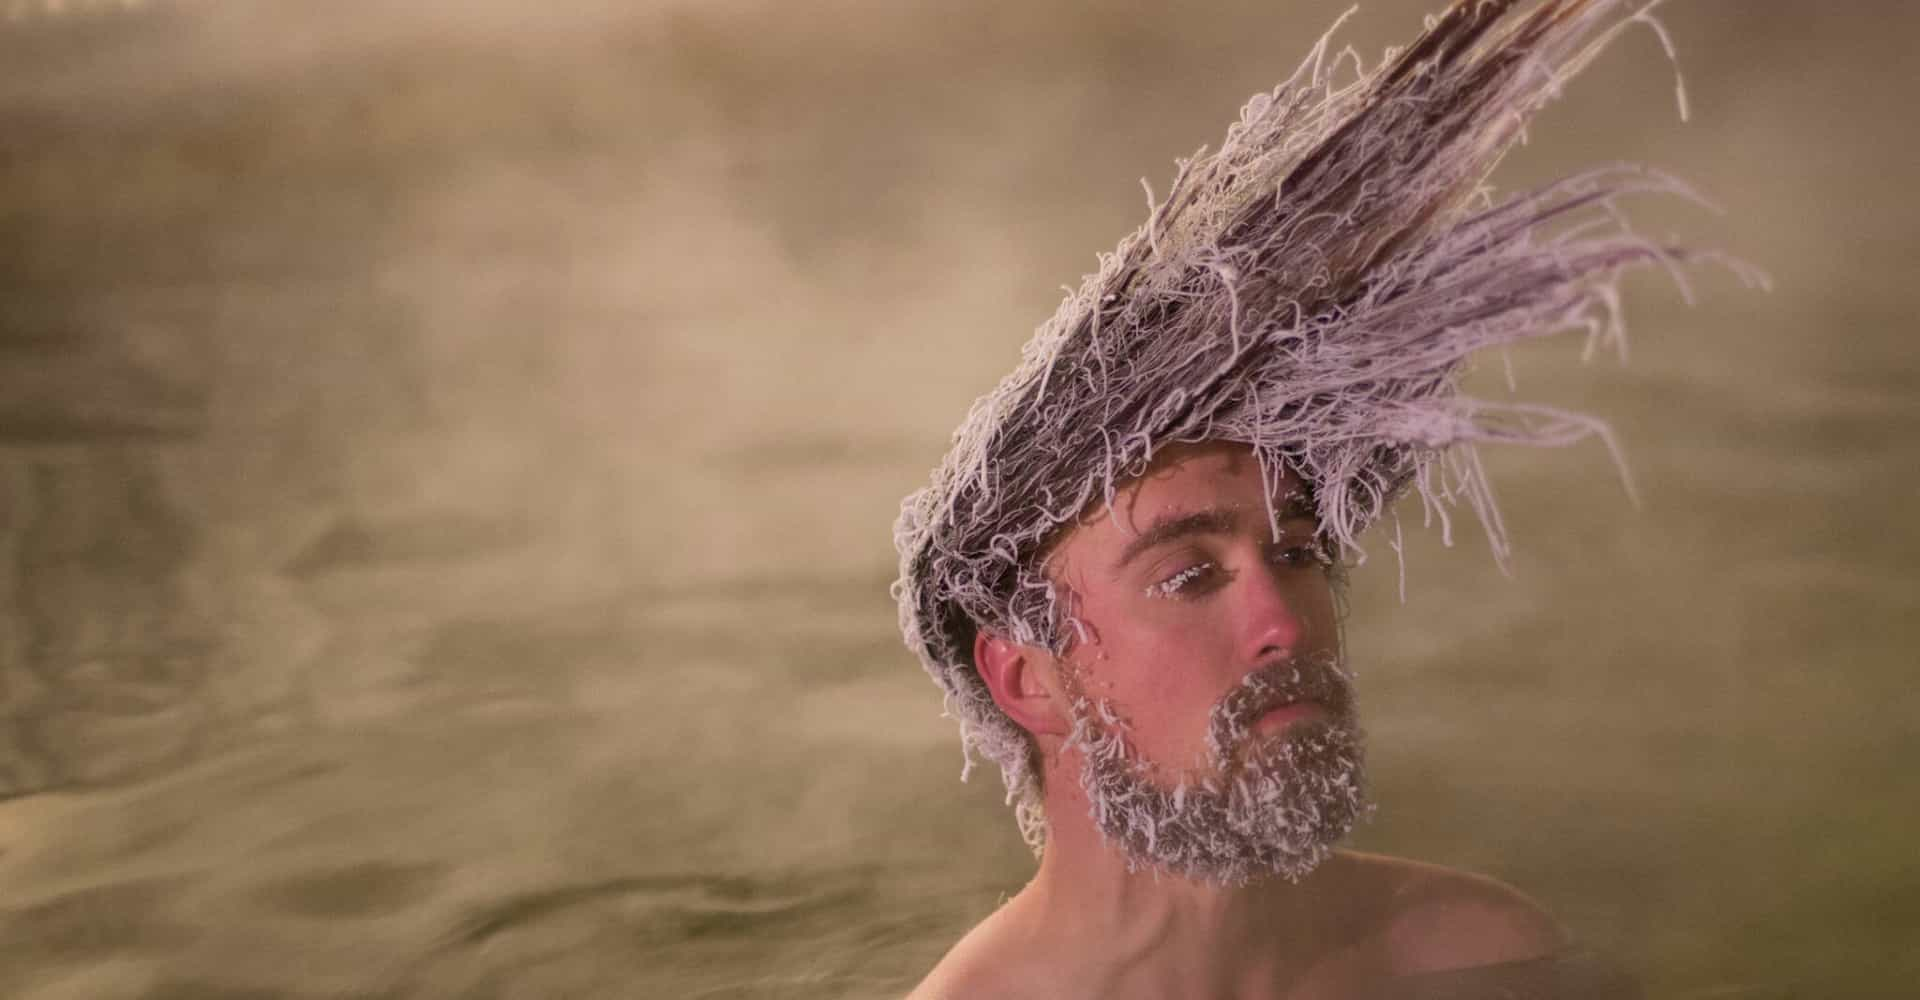 The coolest pics from the International Hair Freezing Contest